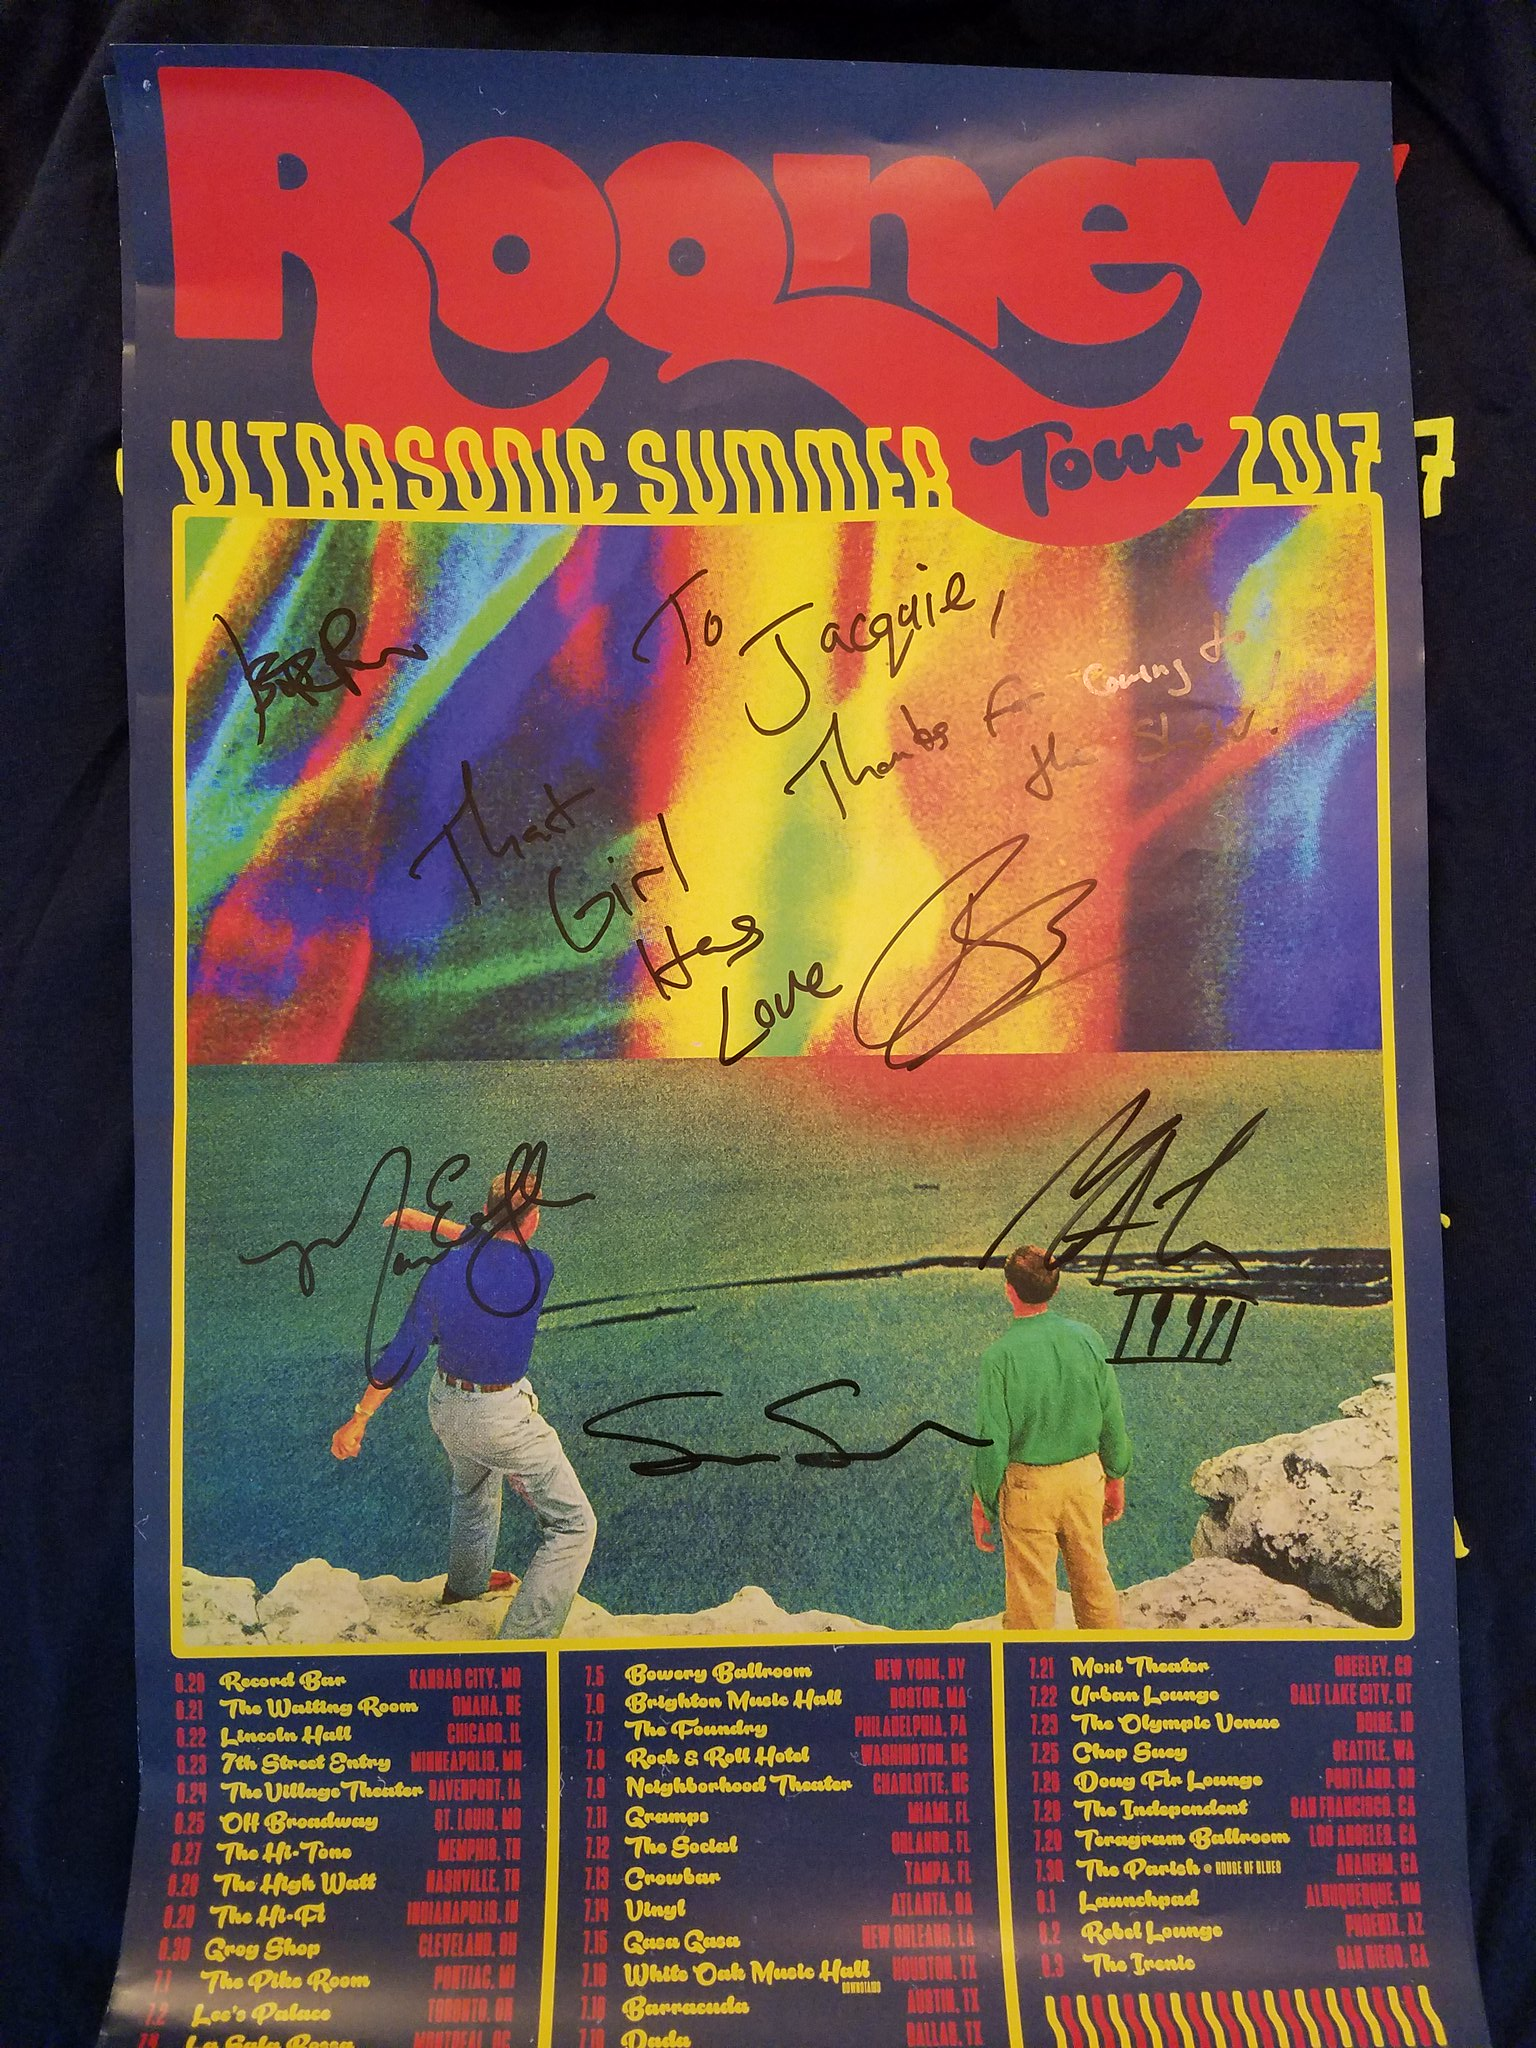 Signed poster from the Rooney Ultrasonic Summer Tour